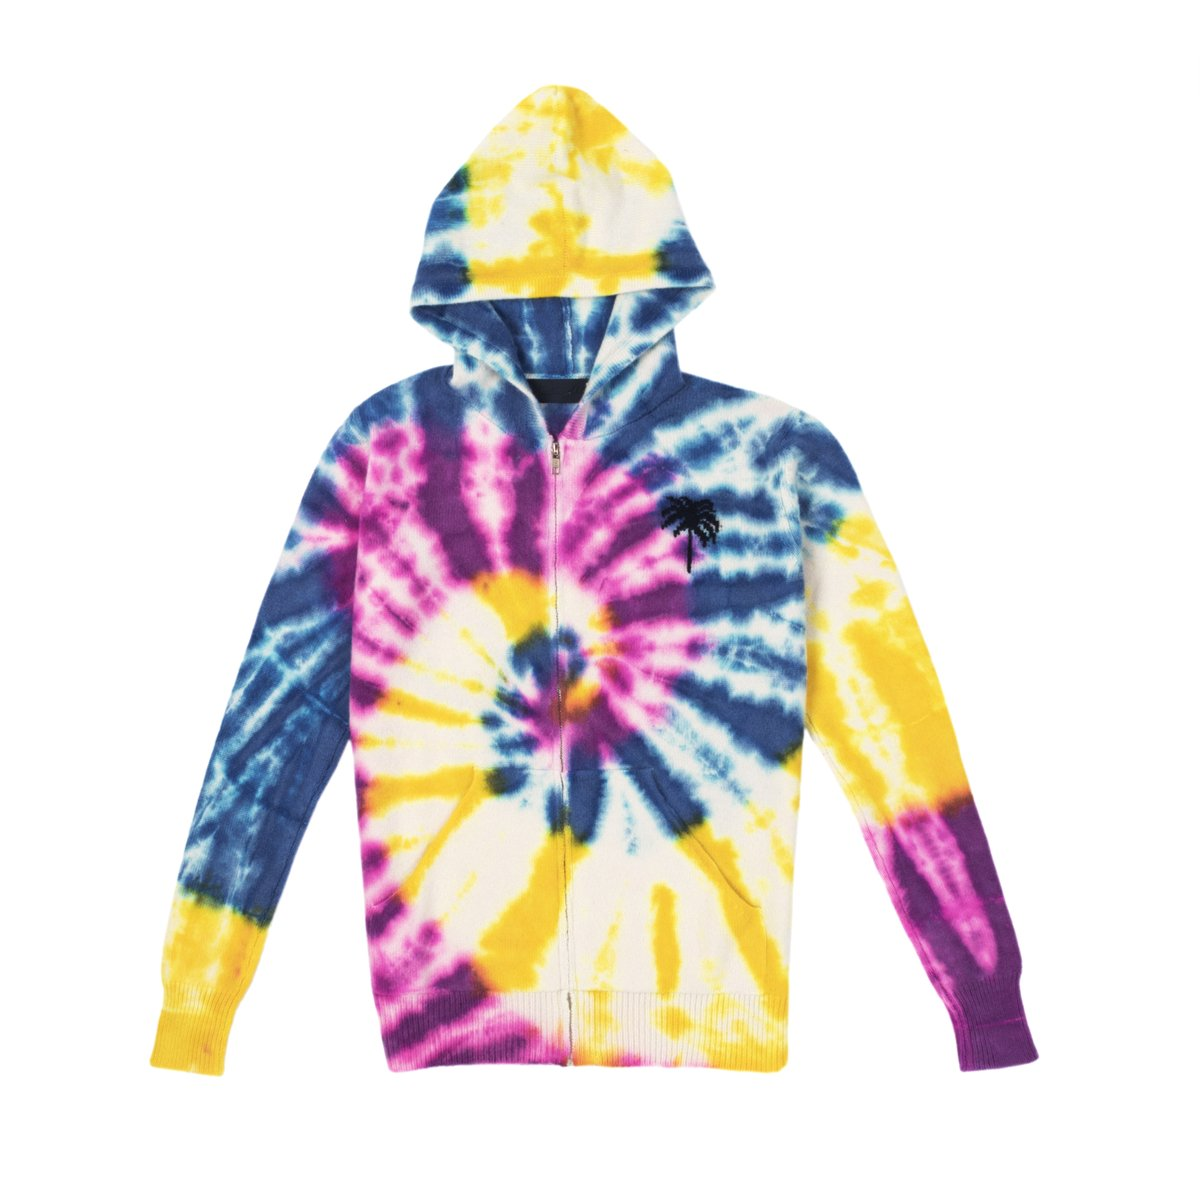 theelderstatesman_Hoodie_IVORY_BLACK_with_ROYAL_BLUE_MAGENTA_YELLOW_BLIZZARD_DYED_PALM_TREES_1_copy_1_1200x1200